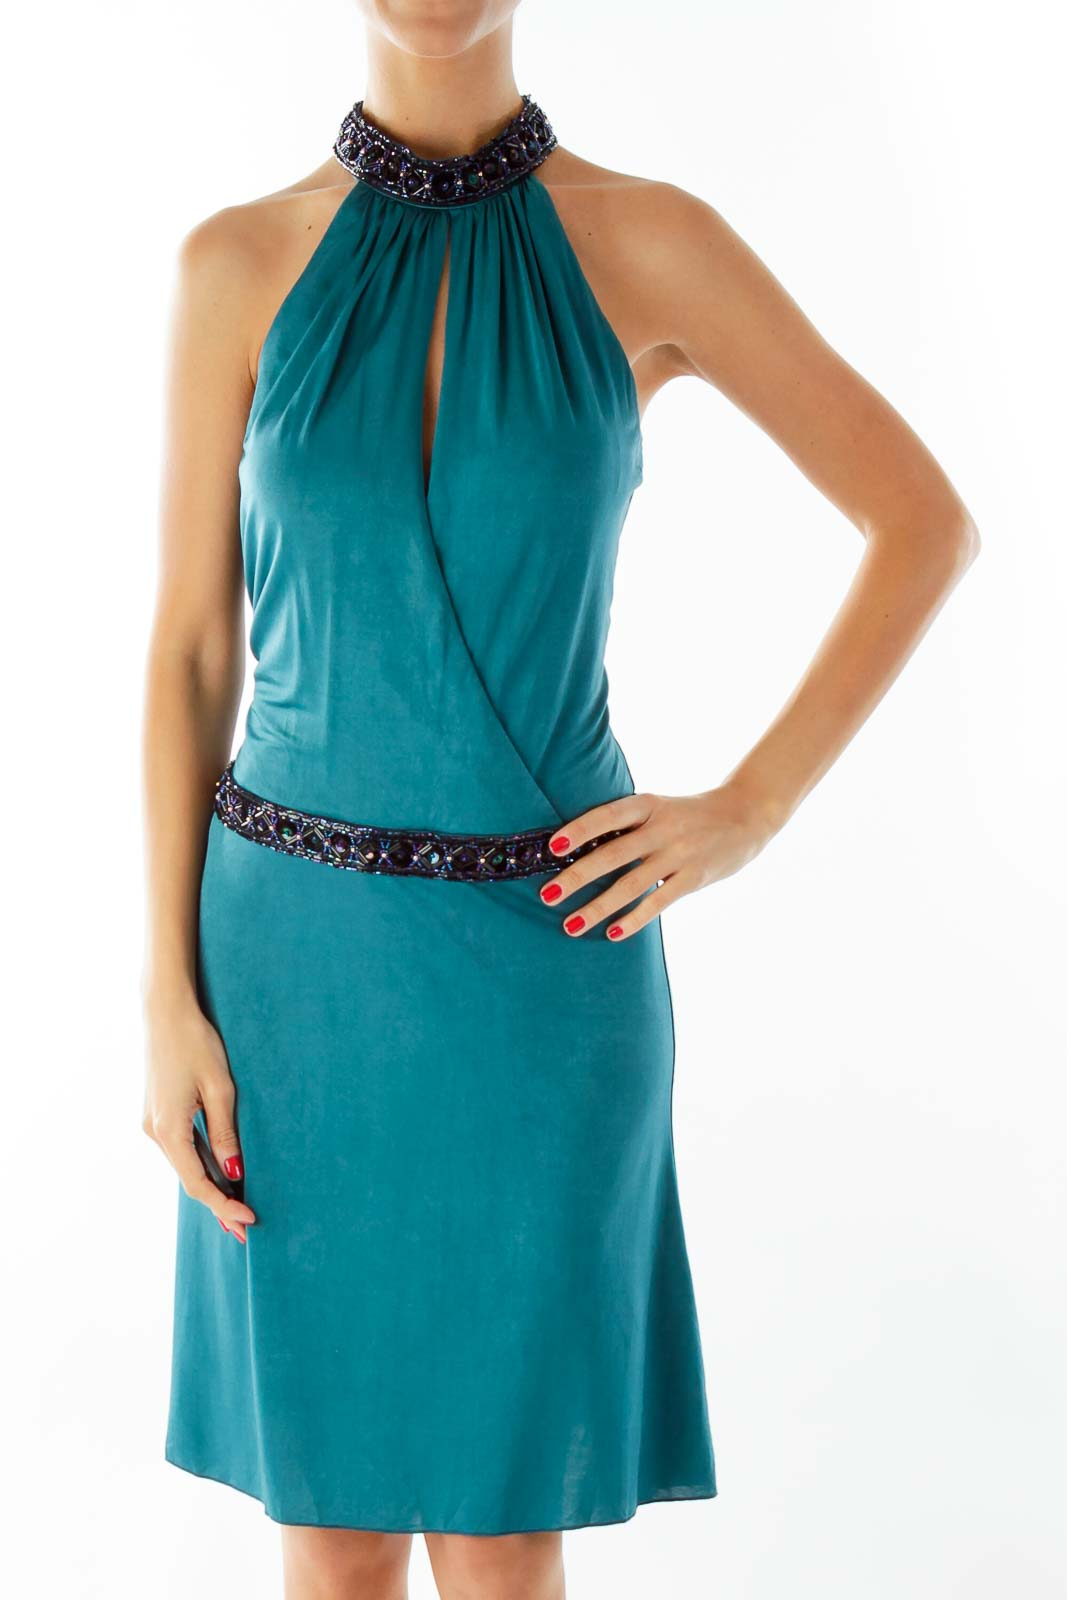 Teal Green Beaded Cocktail Dress